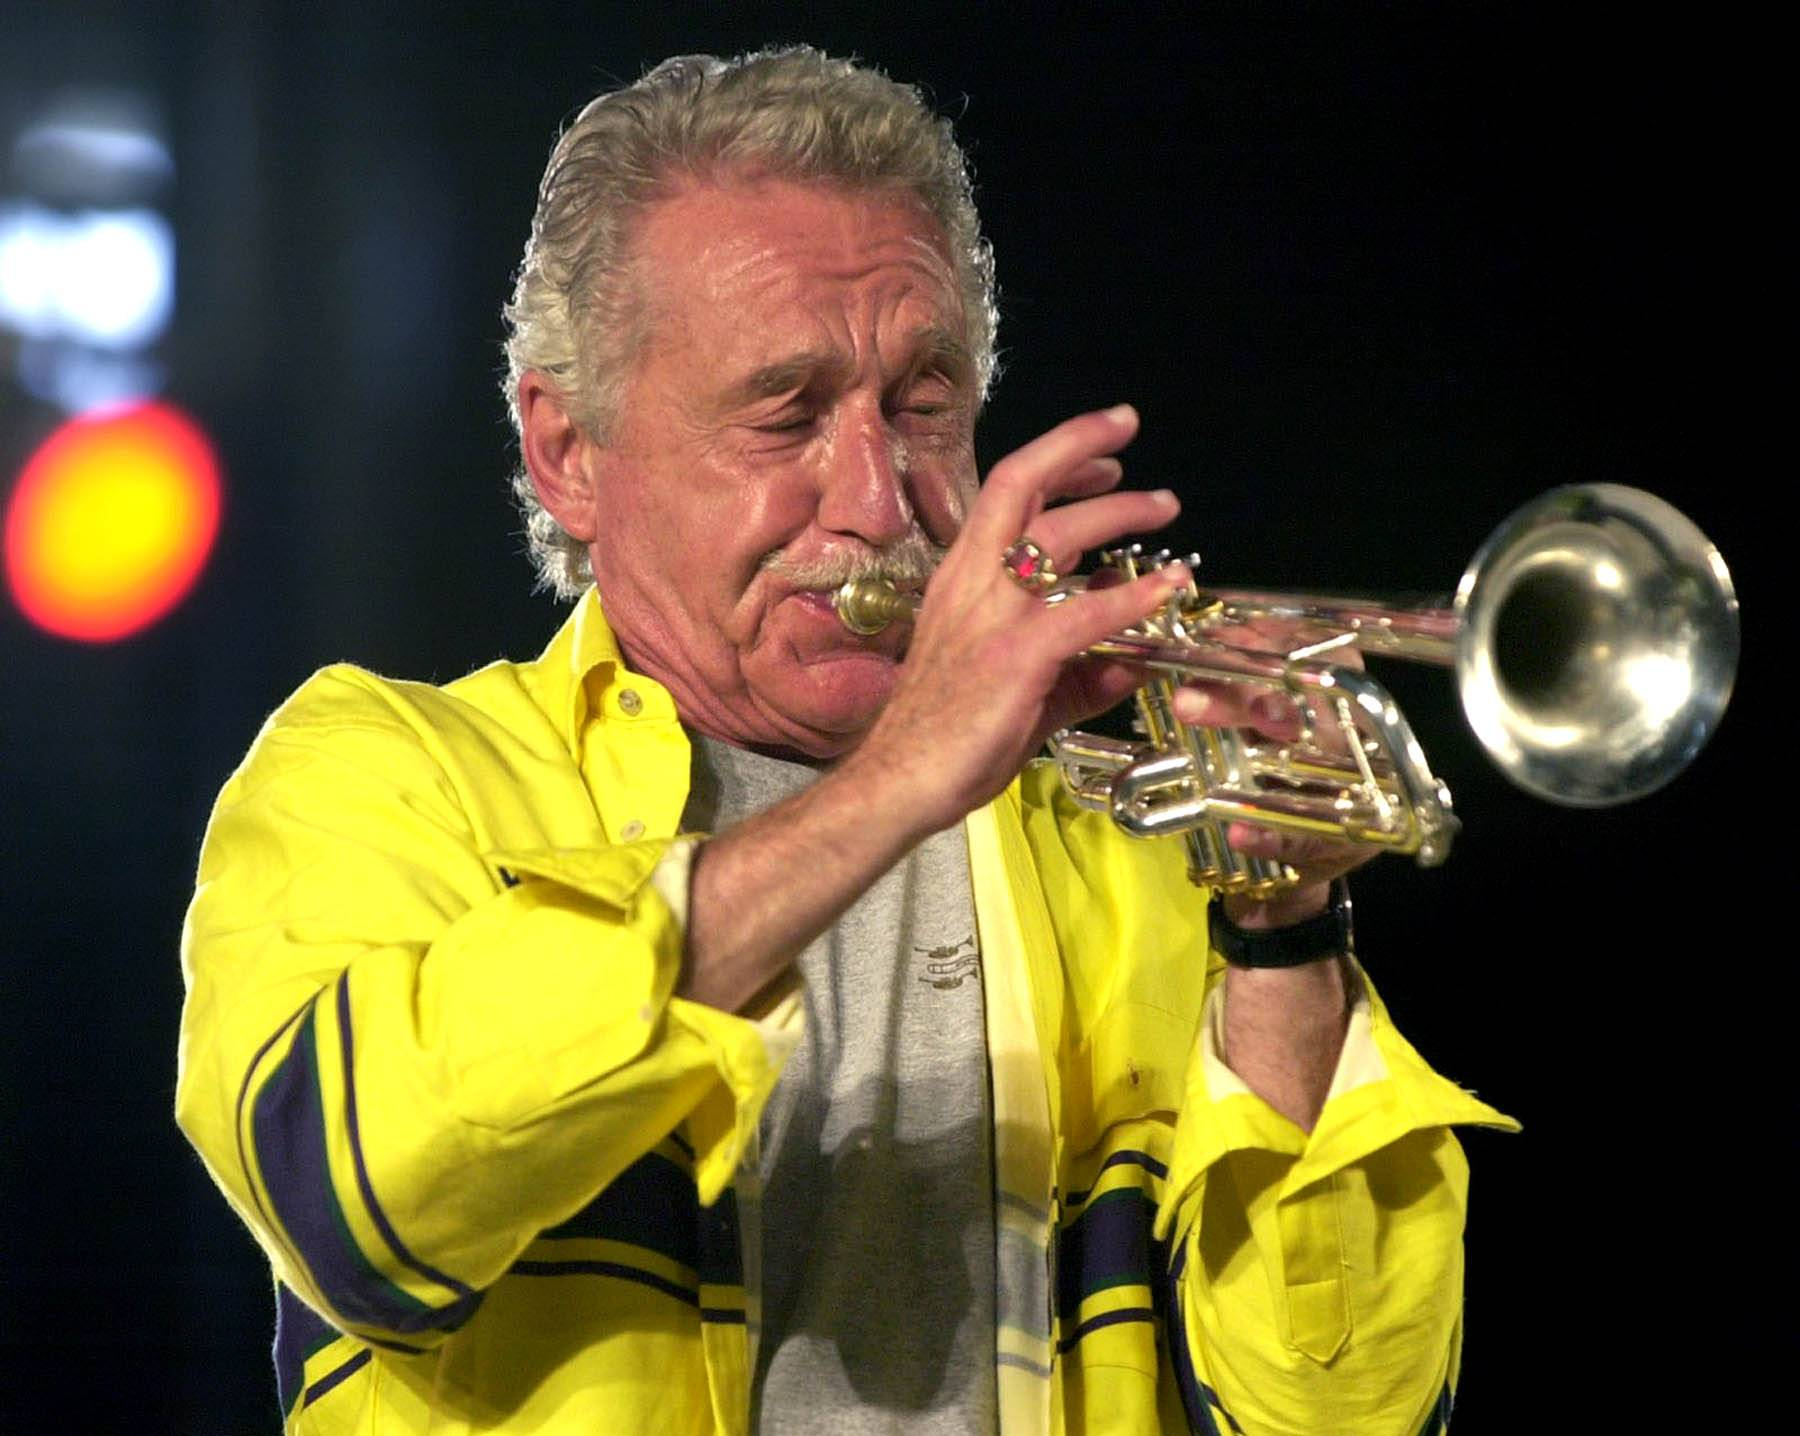 Doc Severinsen to perform at Elmhurst jazz concert